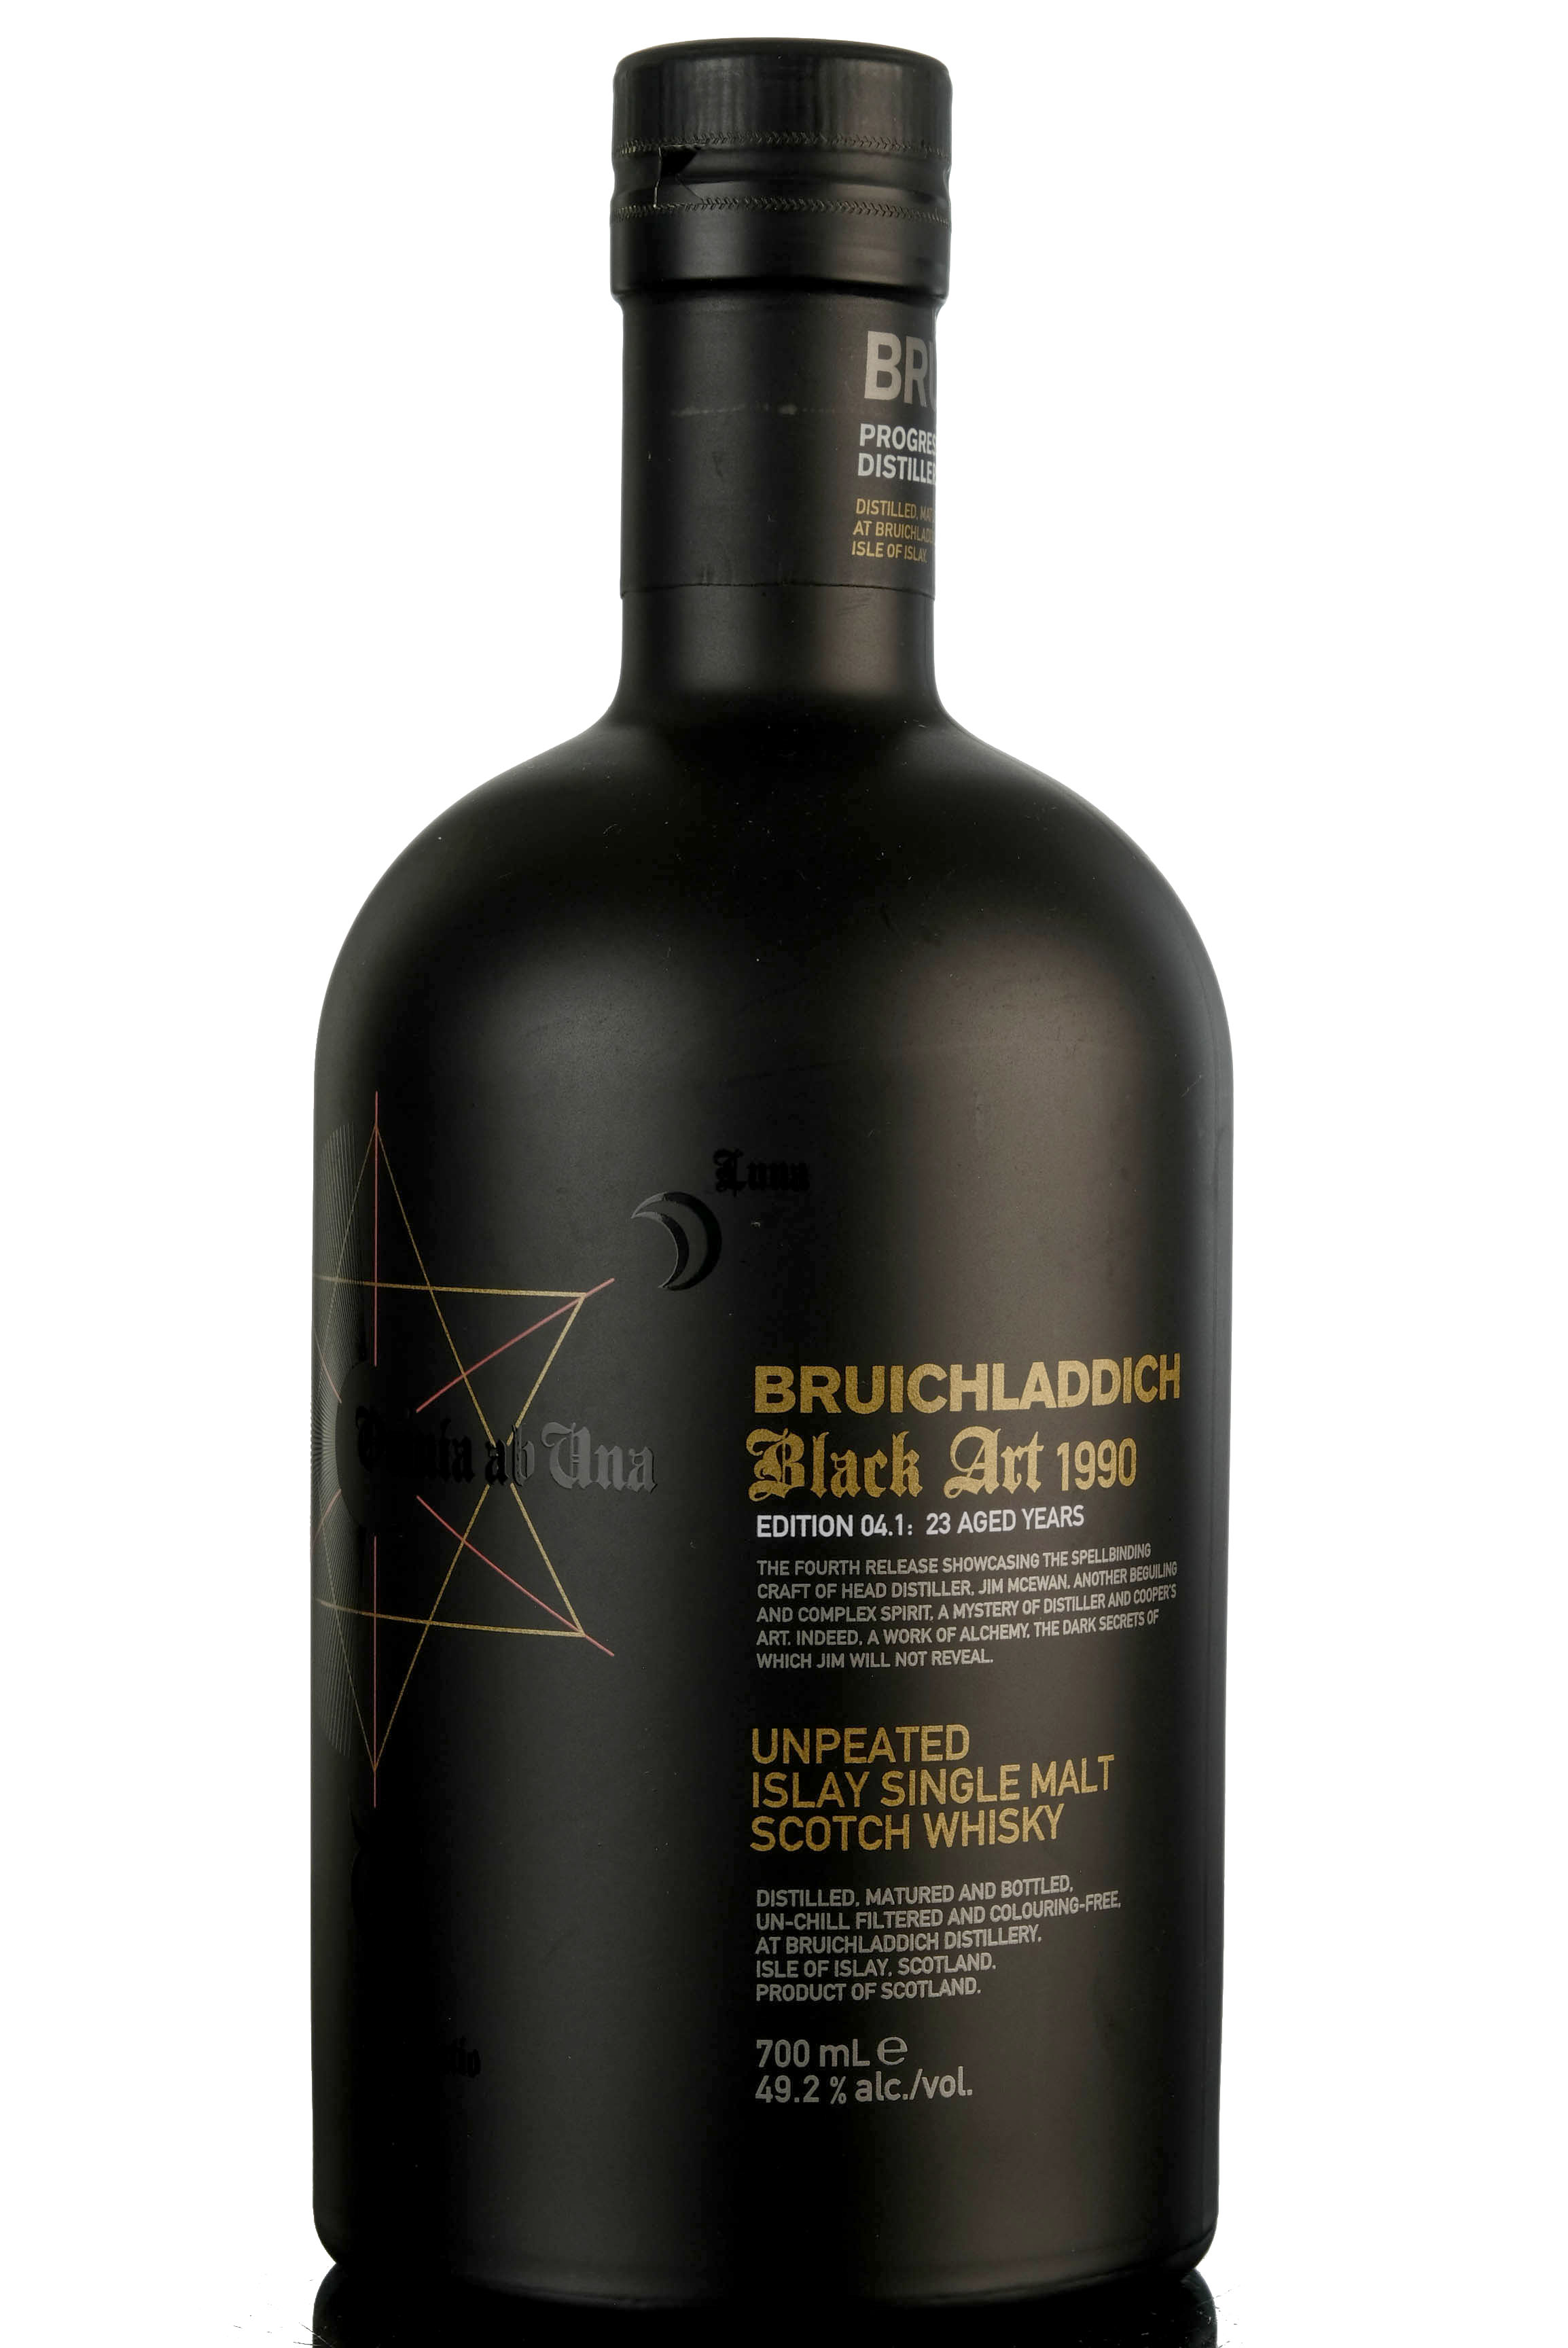 bruichladdich 1990 - black art - edition 04.1